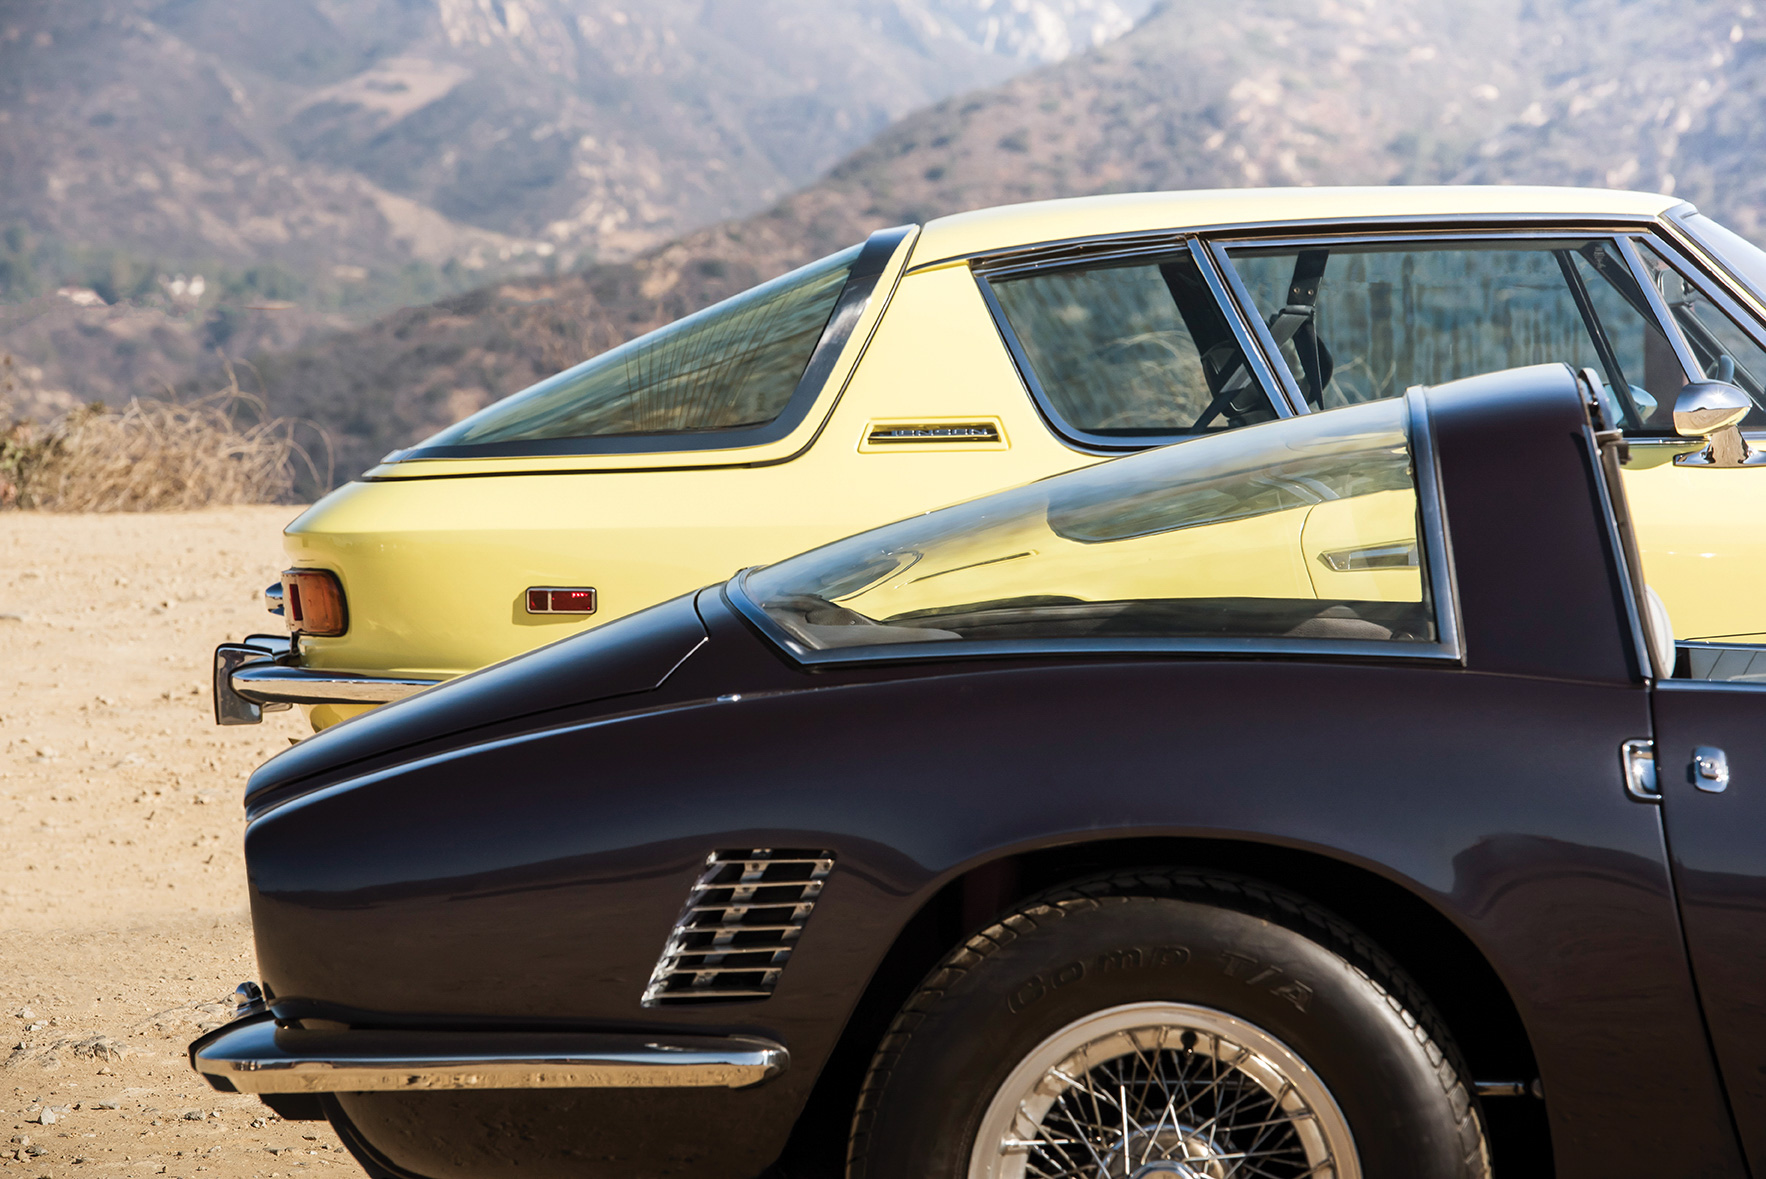 The Jensen's most prominent—and polarizing—feature is its large back window. The sweeping Bertone lines of the Iso, meanwhile, are as elegant as it gets.